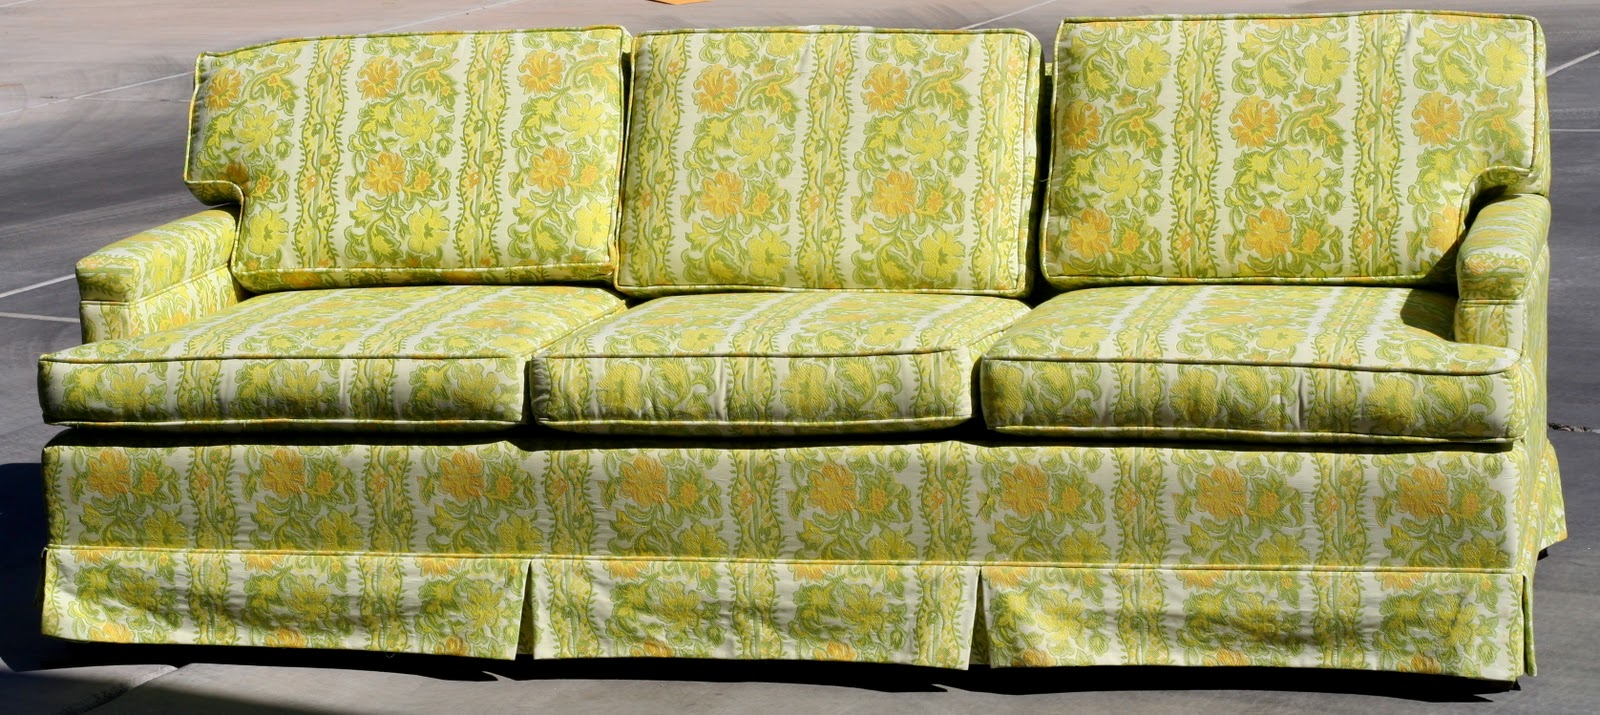 An Old Grandma Couch From 1968. Lemon Lime With Cream. Not The Cutest Girl  In The Room, Thatu0027s For Sure, But I Could Tell She Had Great Bones  Clean,  ...